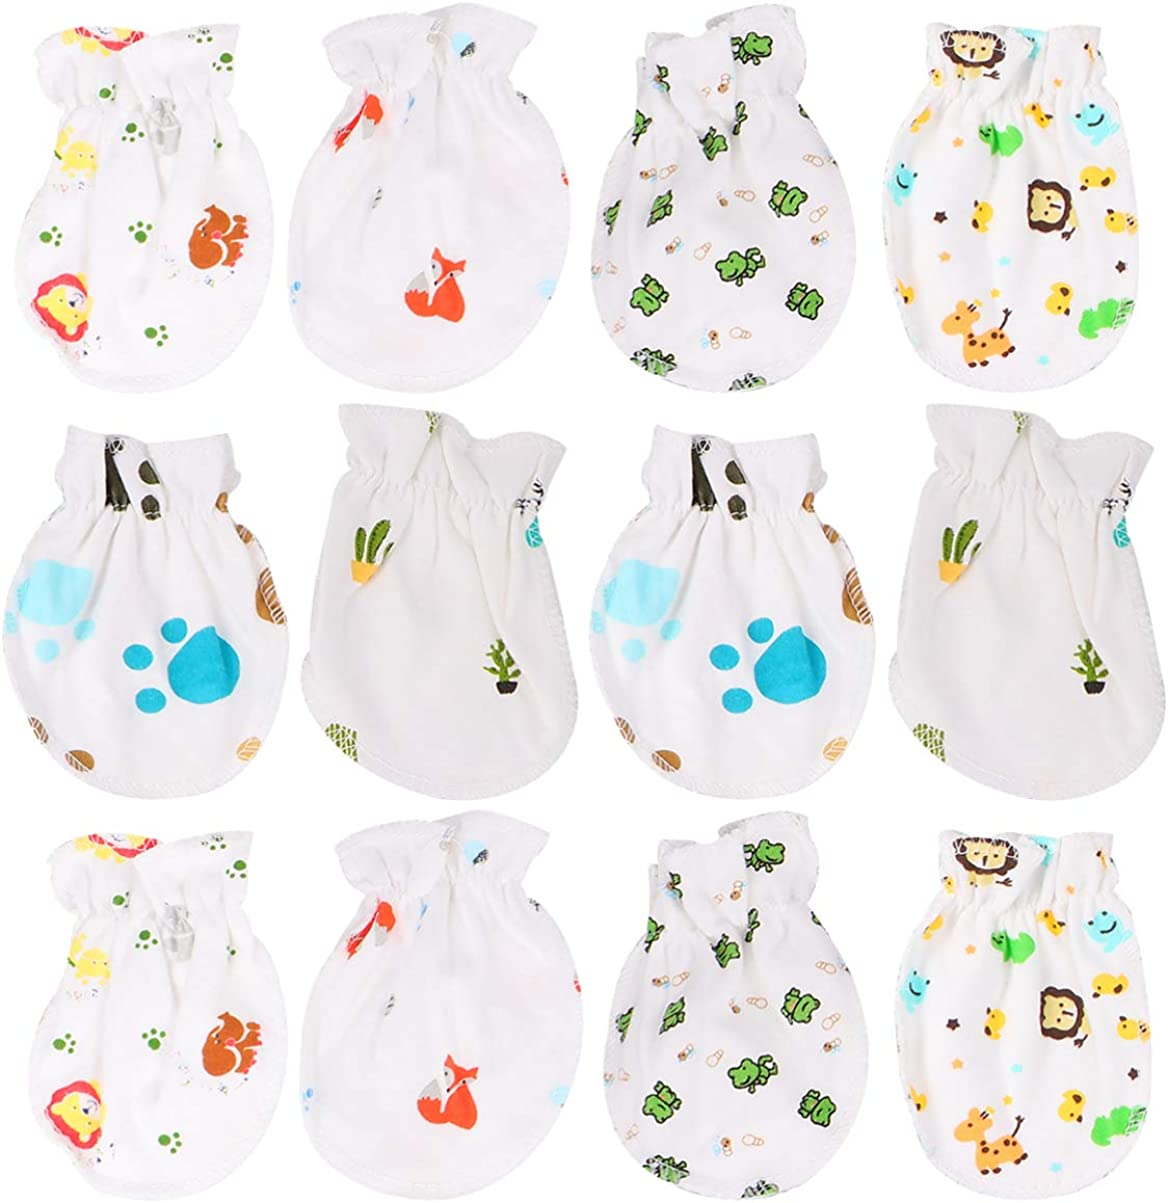 KESYOO 6 Pairs Baby Anti Scratching Gloves Newborn Face Protection Cotton Scratch Mittens No Scratch Mitts for Newborn Infant Baby Random Style